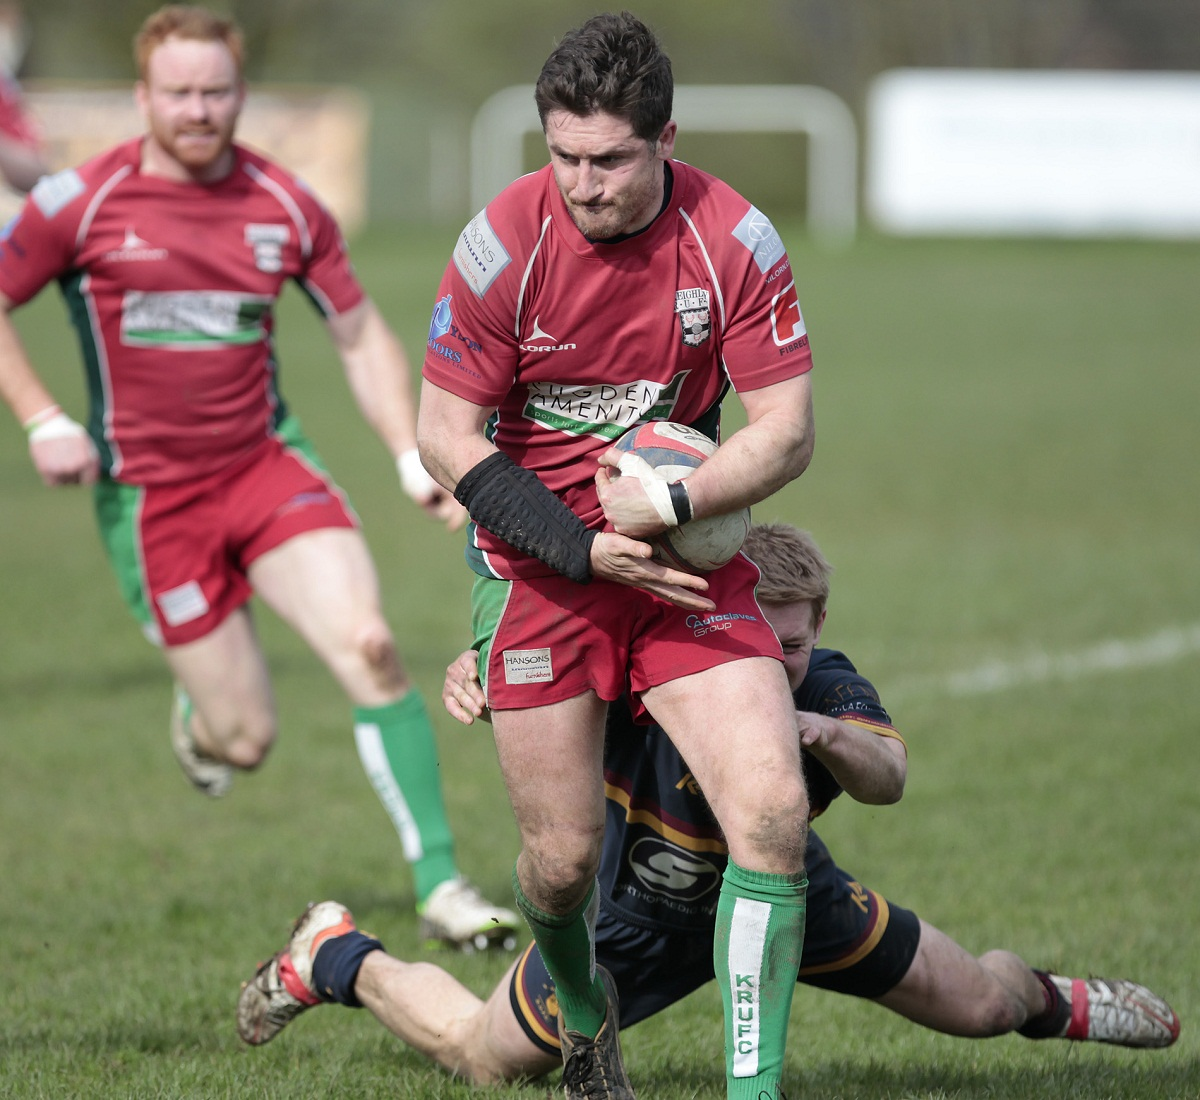 Danny McGee scored one of Keighley's two tries. Picture: Charlie Perry